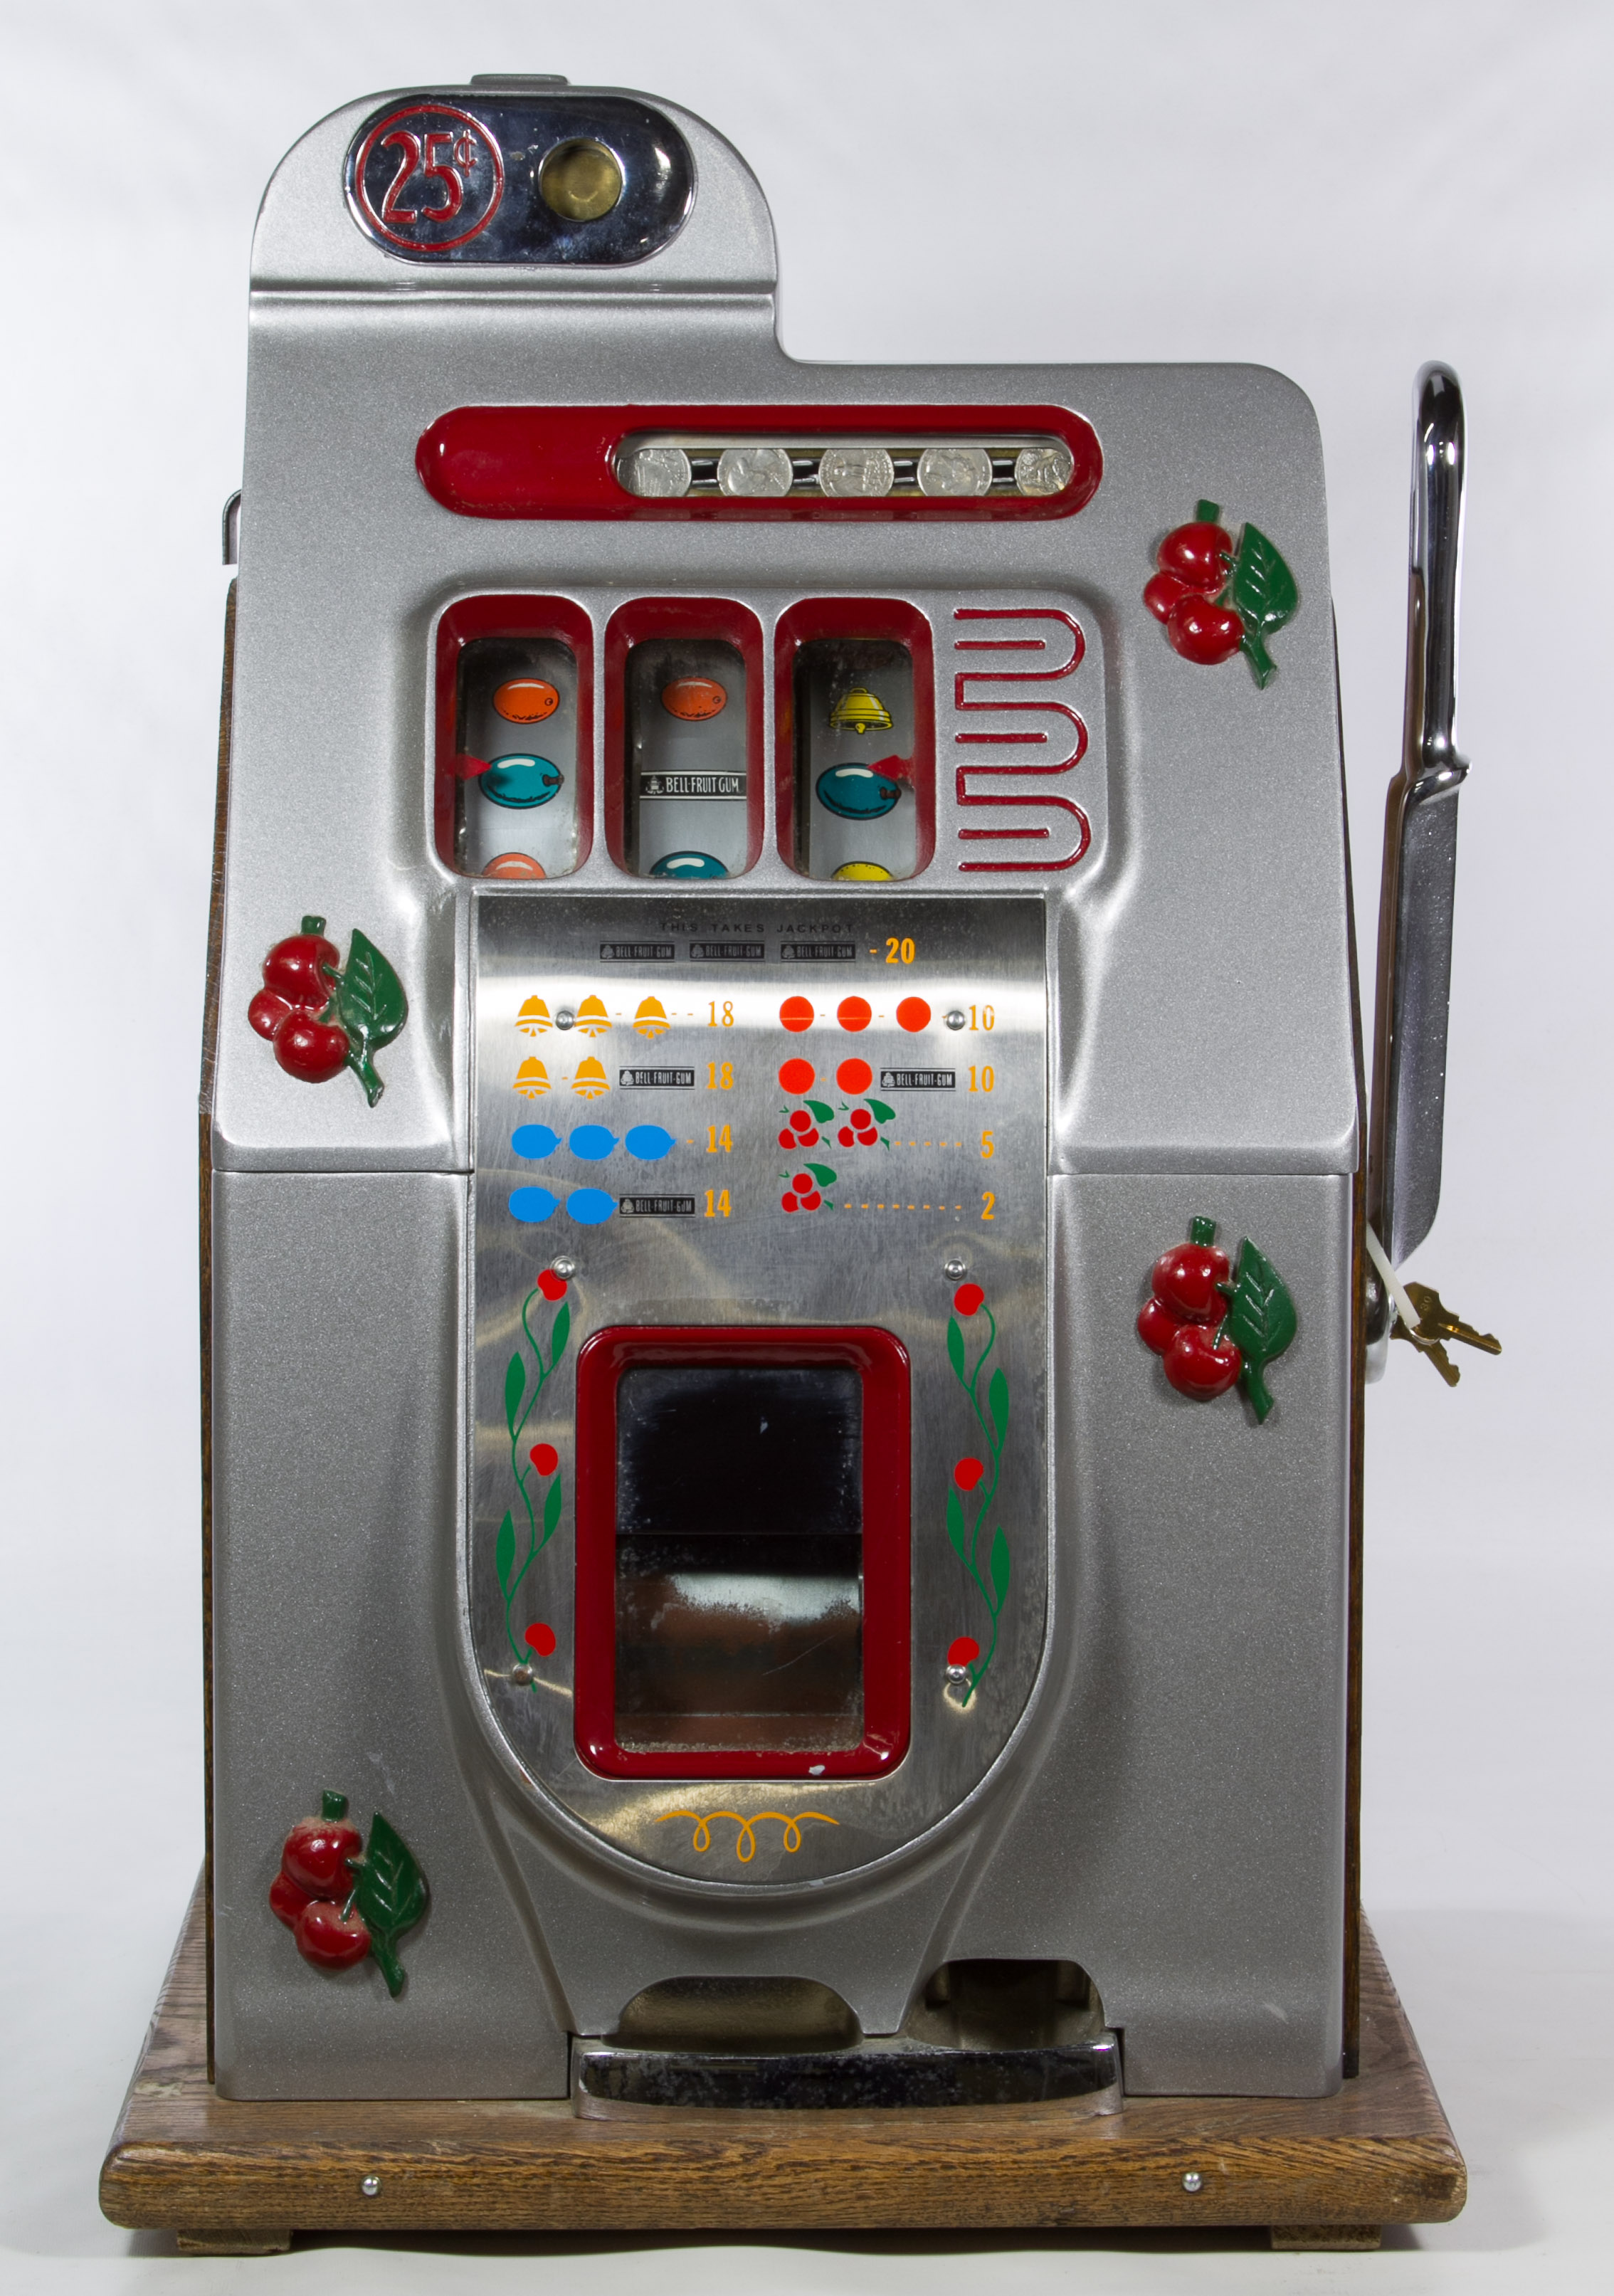 free quarter slot machines